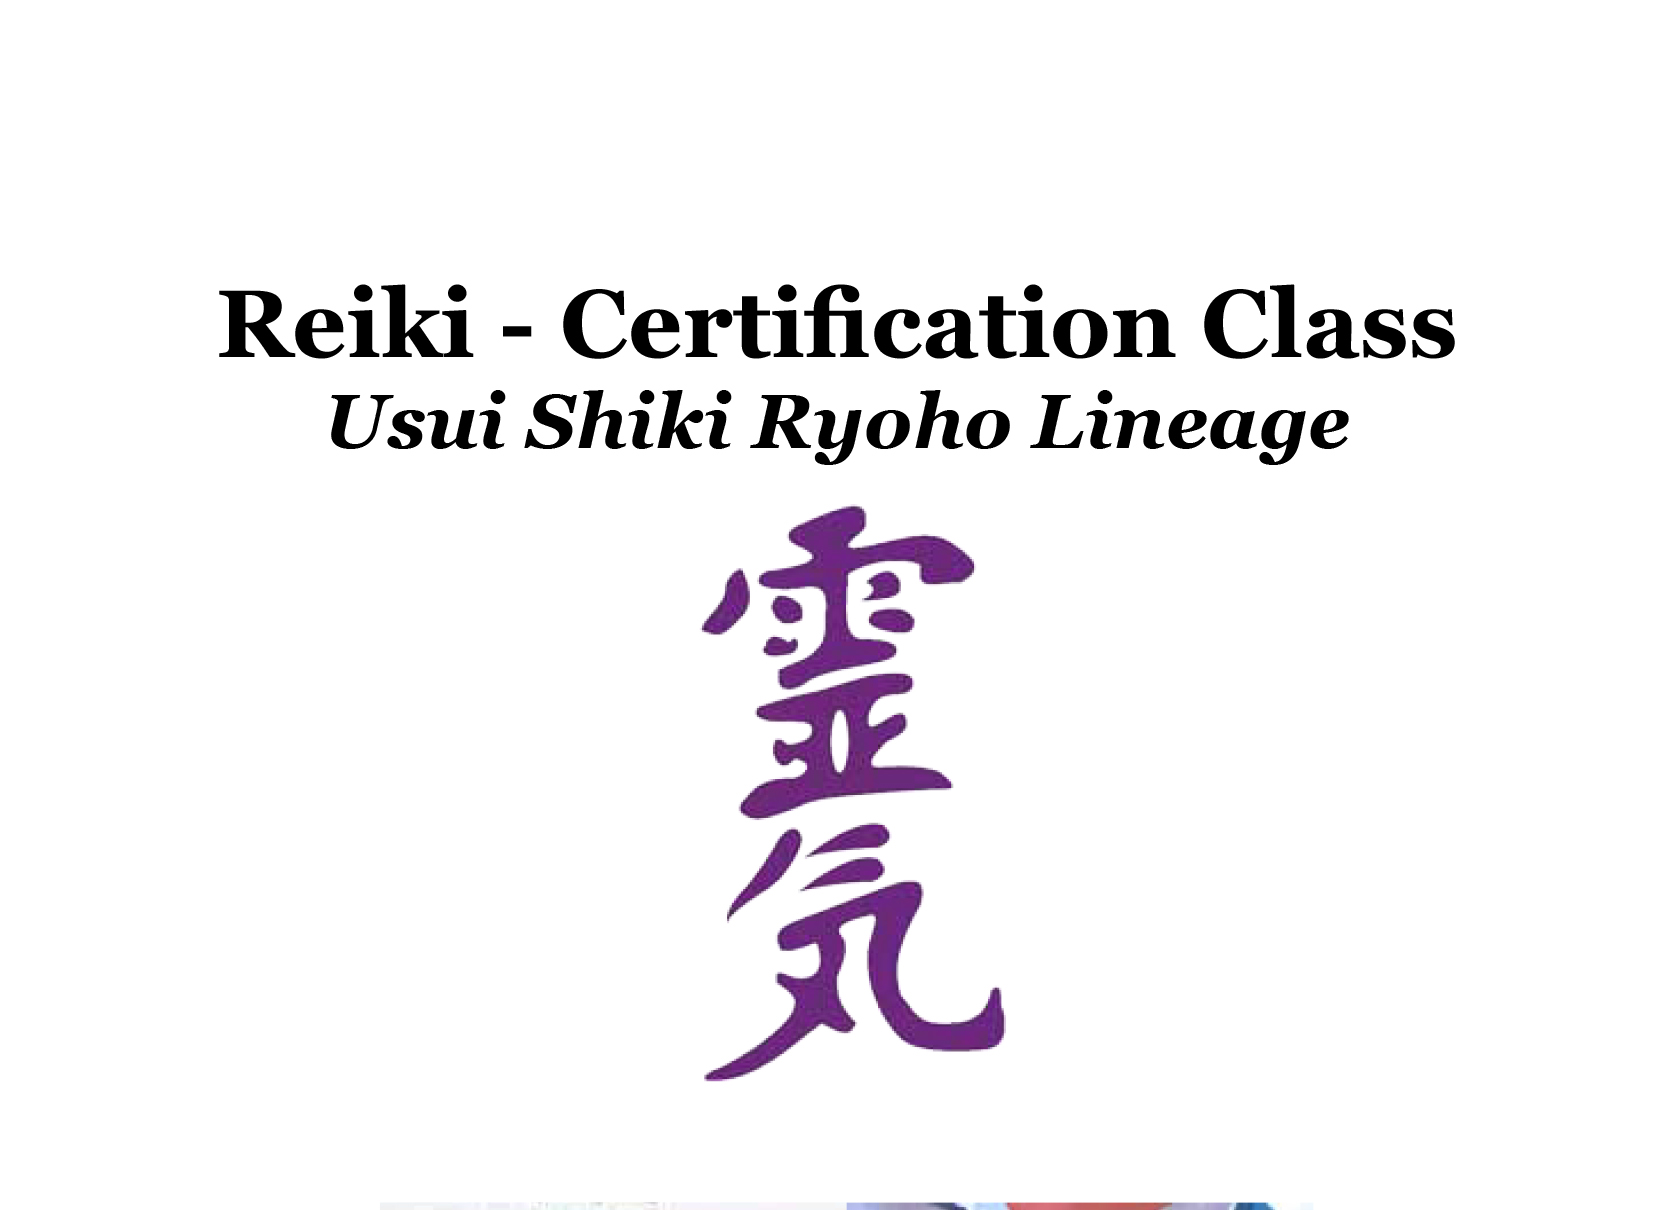 Reiki Certification Classes